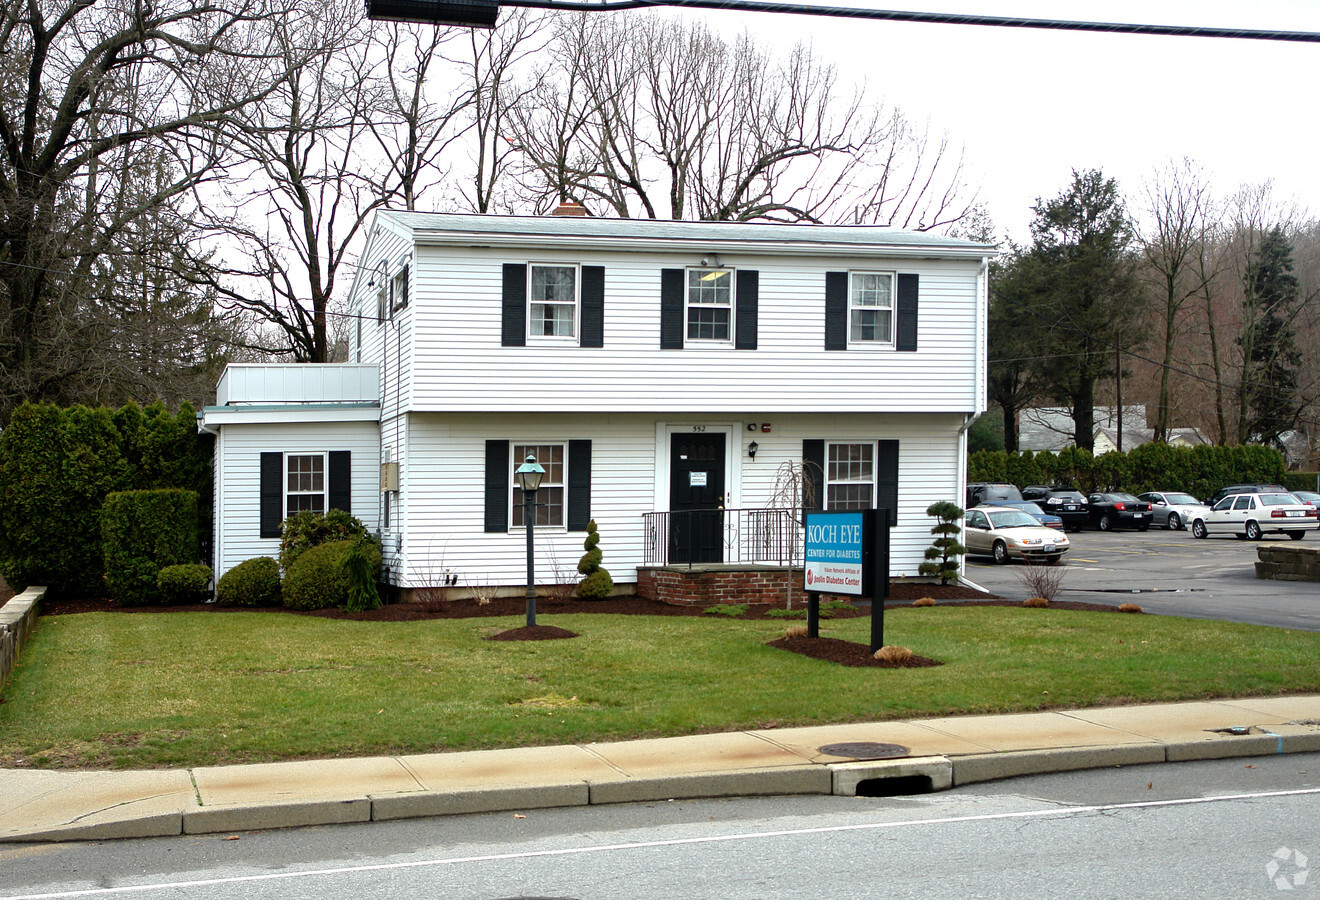 Kayaly Sober House │ Level 2 │ Sober Living for Women in Warwick, Rhode Island